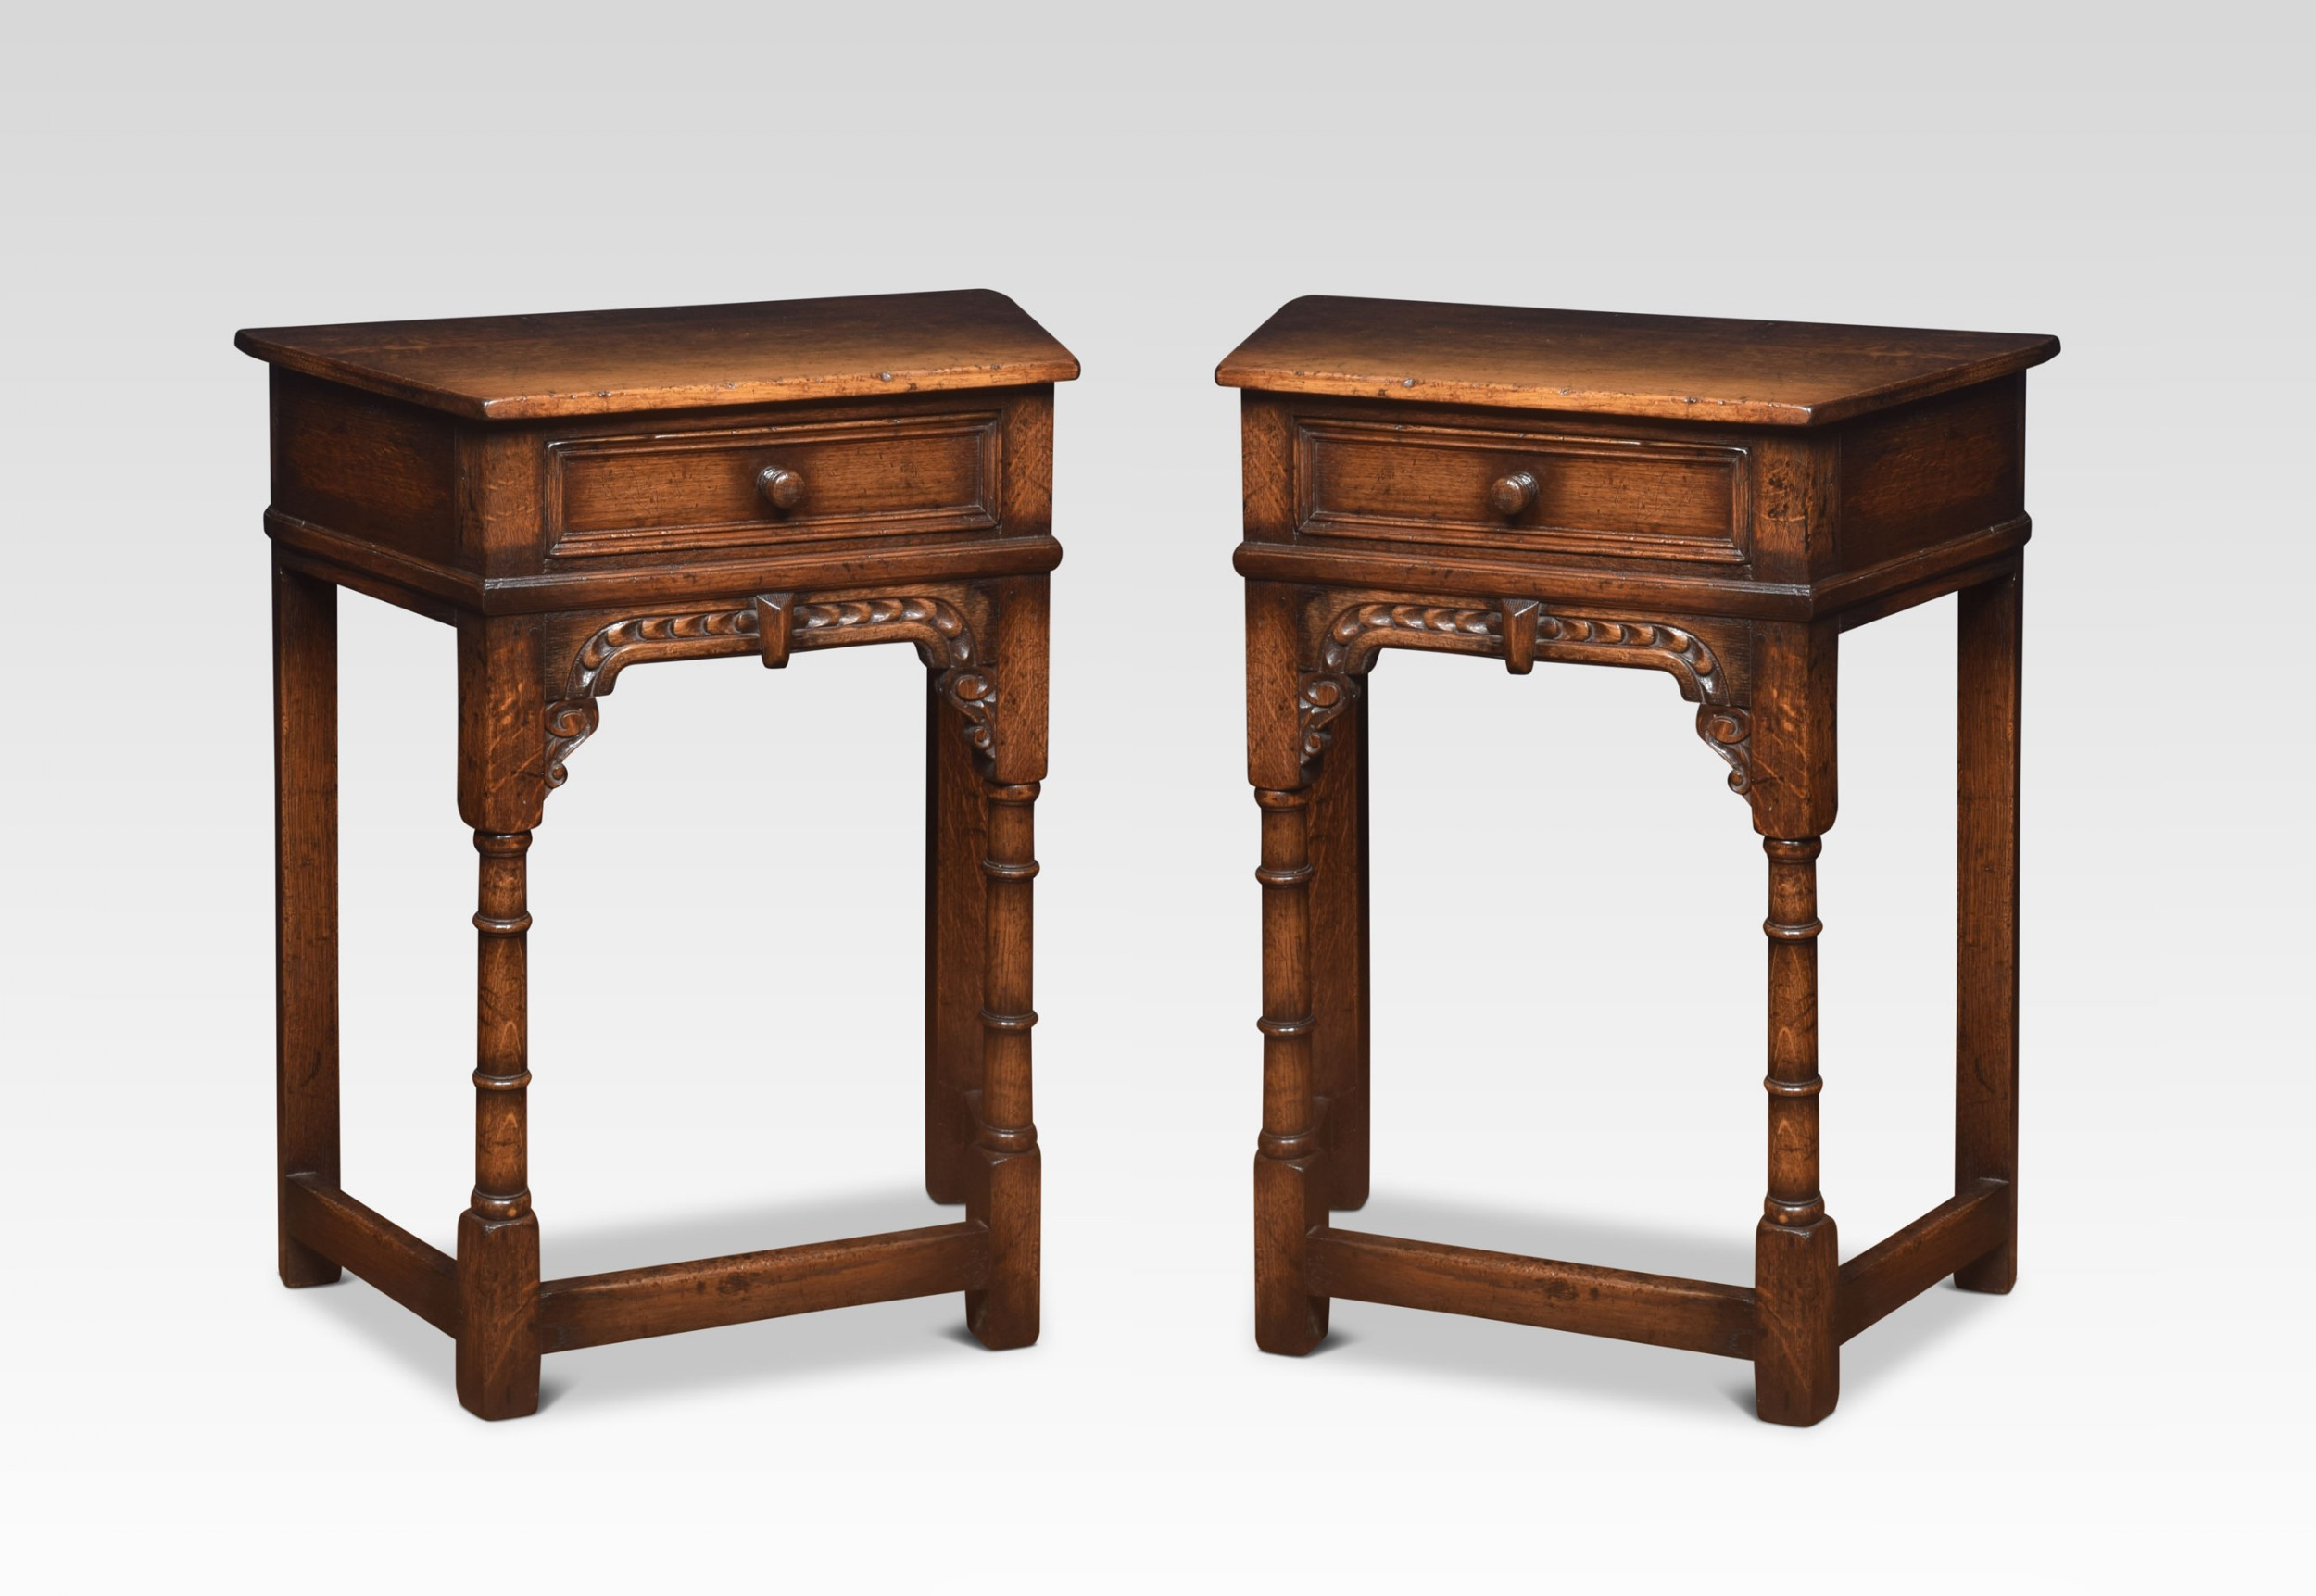 pair of 17th century style oak side tables